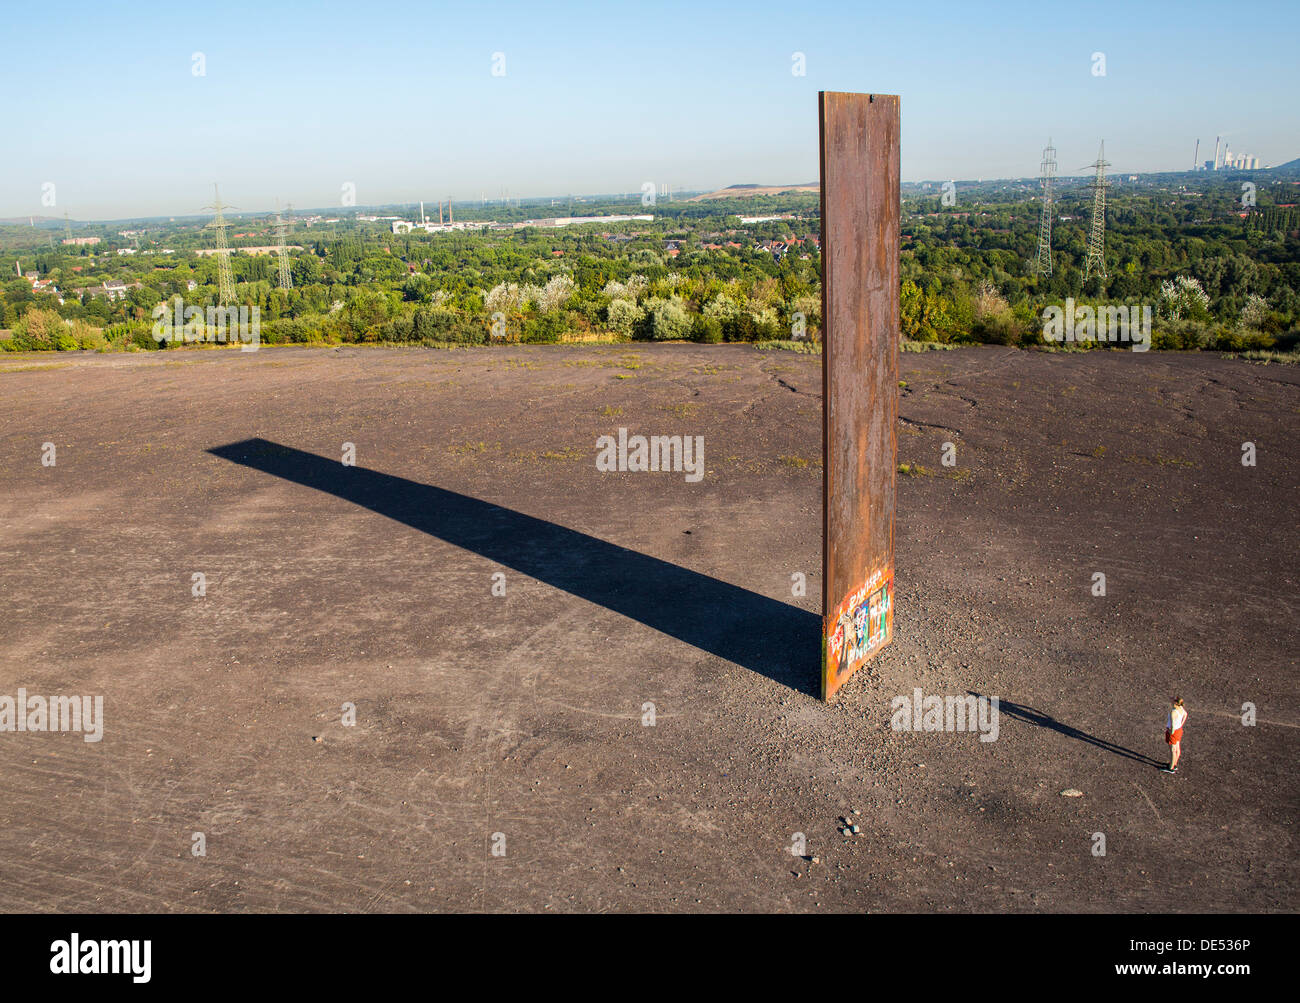 """Sculpture """"Bramme"""" on an artificial hill, a stockpile. 20 Meters high steel slab. Essen, Germany. Stock Photo"""